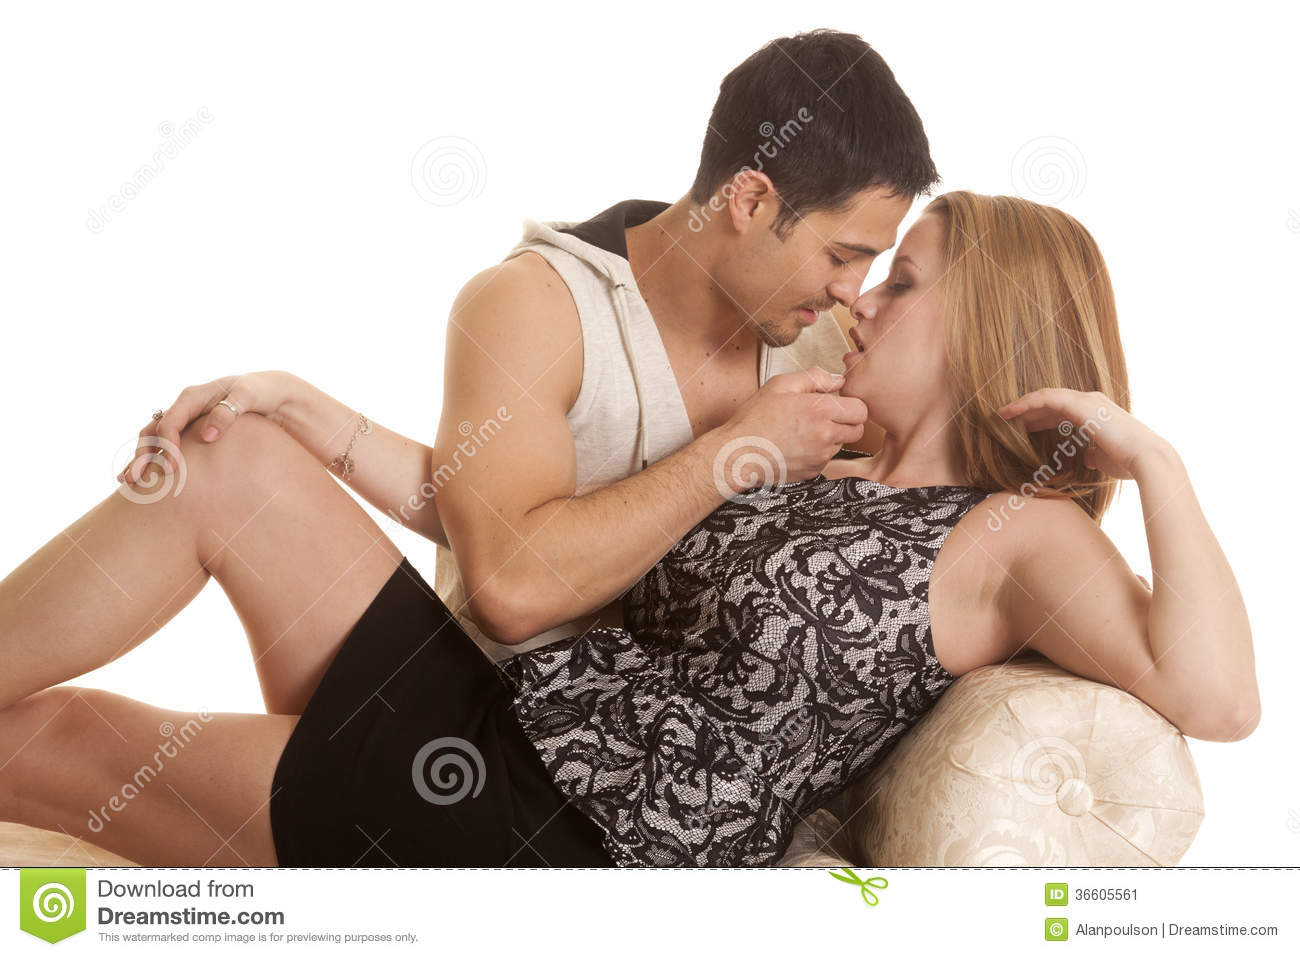 pics of man hold nude woman